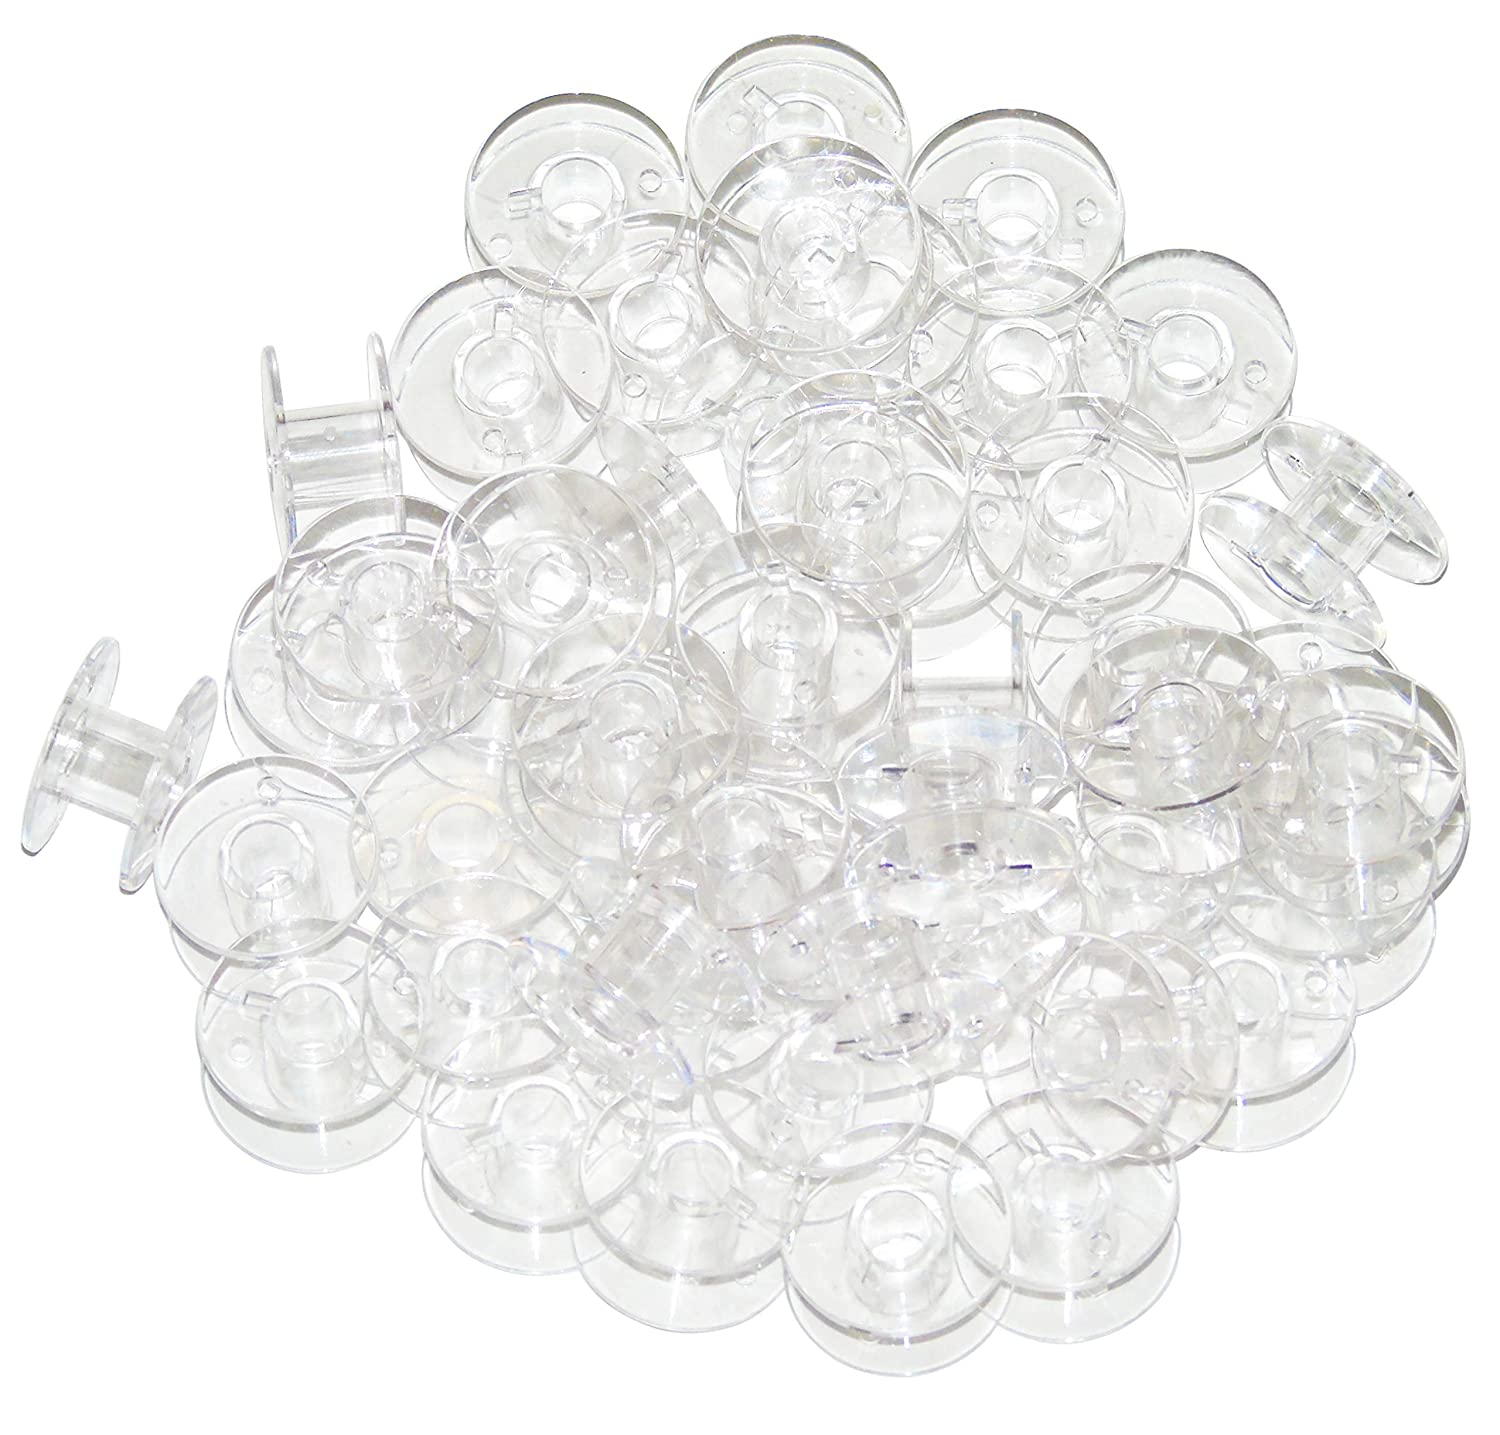 Ceeyali 100 Pcs Transparent Sewing Bobbins for Brother Singer Babylock Kenmore Janome (100 Pcs Transparent Bobbins) 4337000168